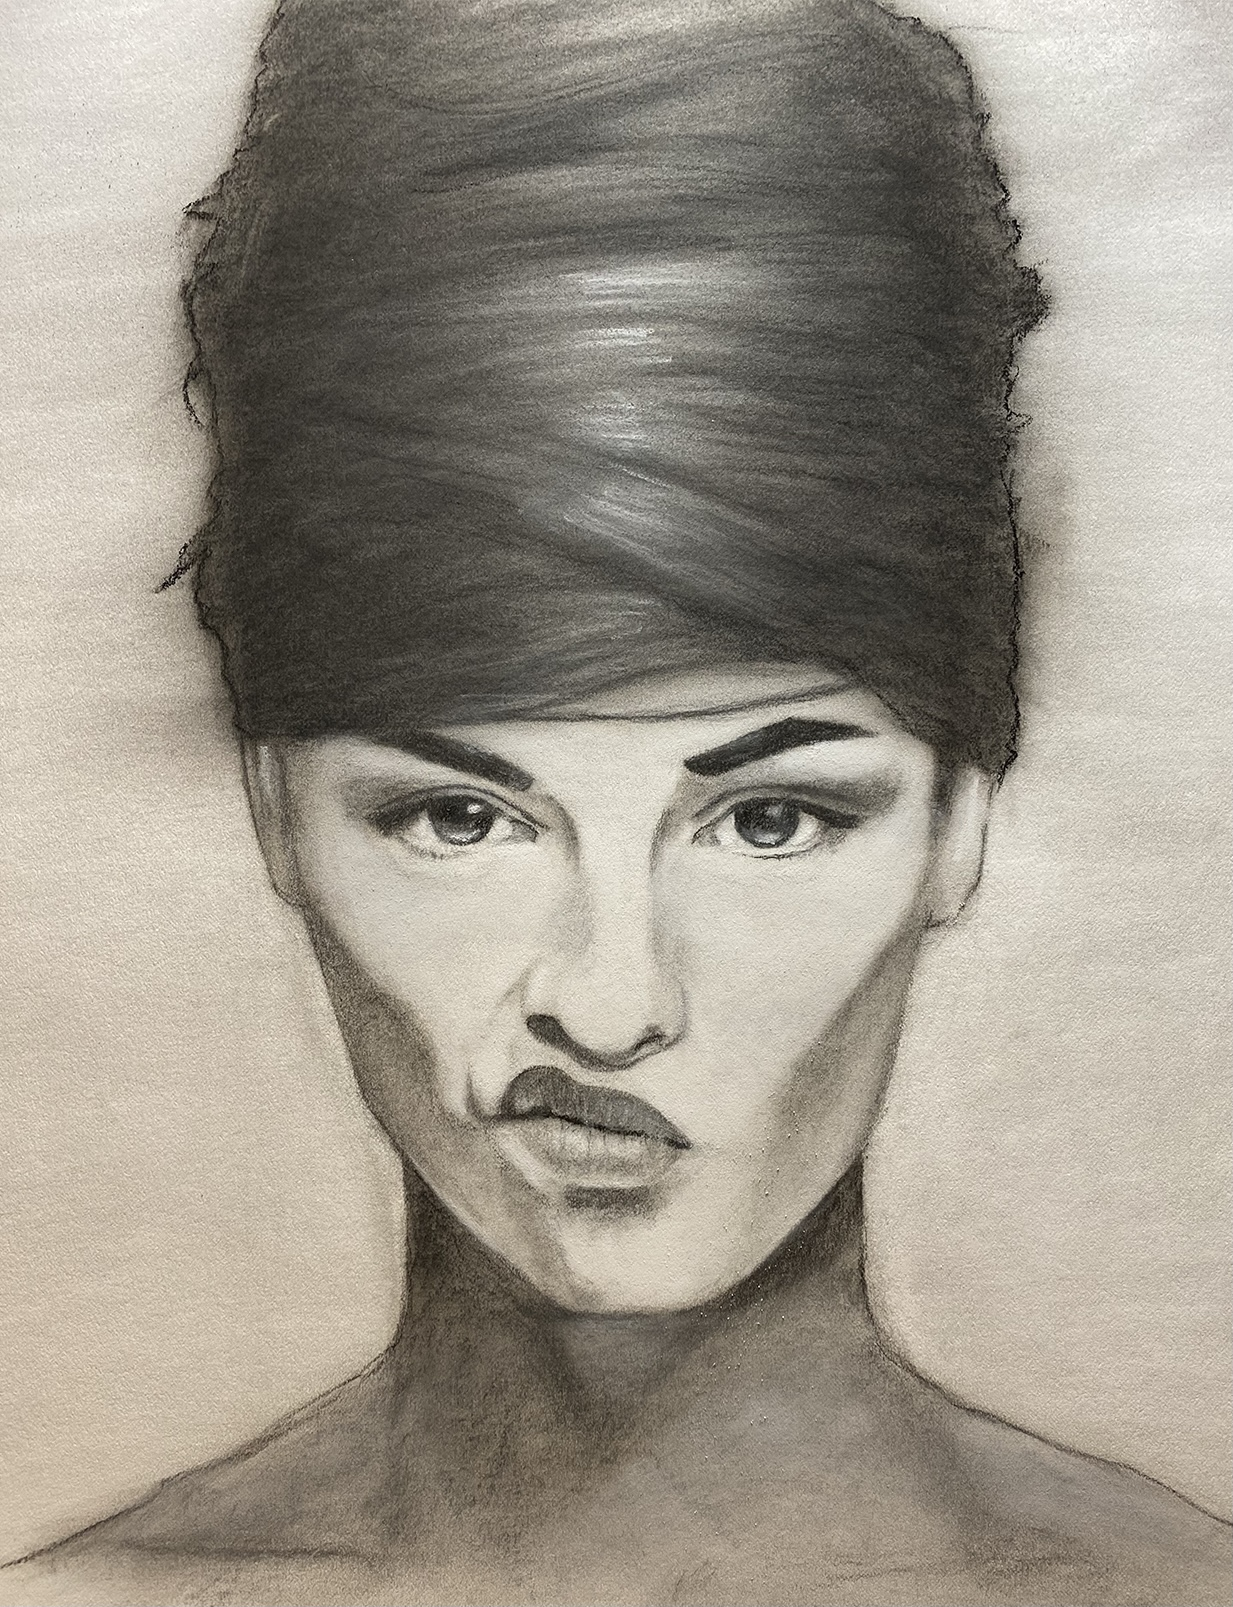 Charcoal study from reference found on Pinterest. The exercise was trying to get a nice organic hair on the model. Work was Alphacolor, and Conte crayon, with Nitram charcoal powder. I used a Hake brush to soften up the work.